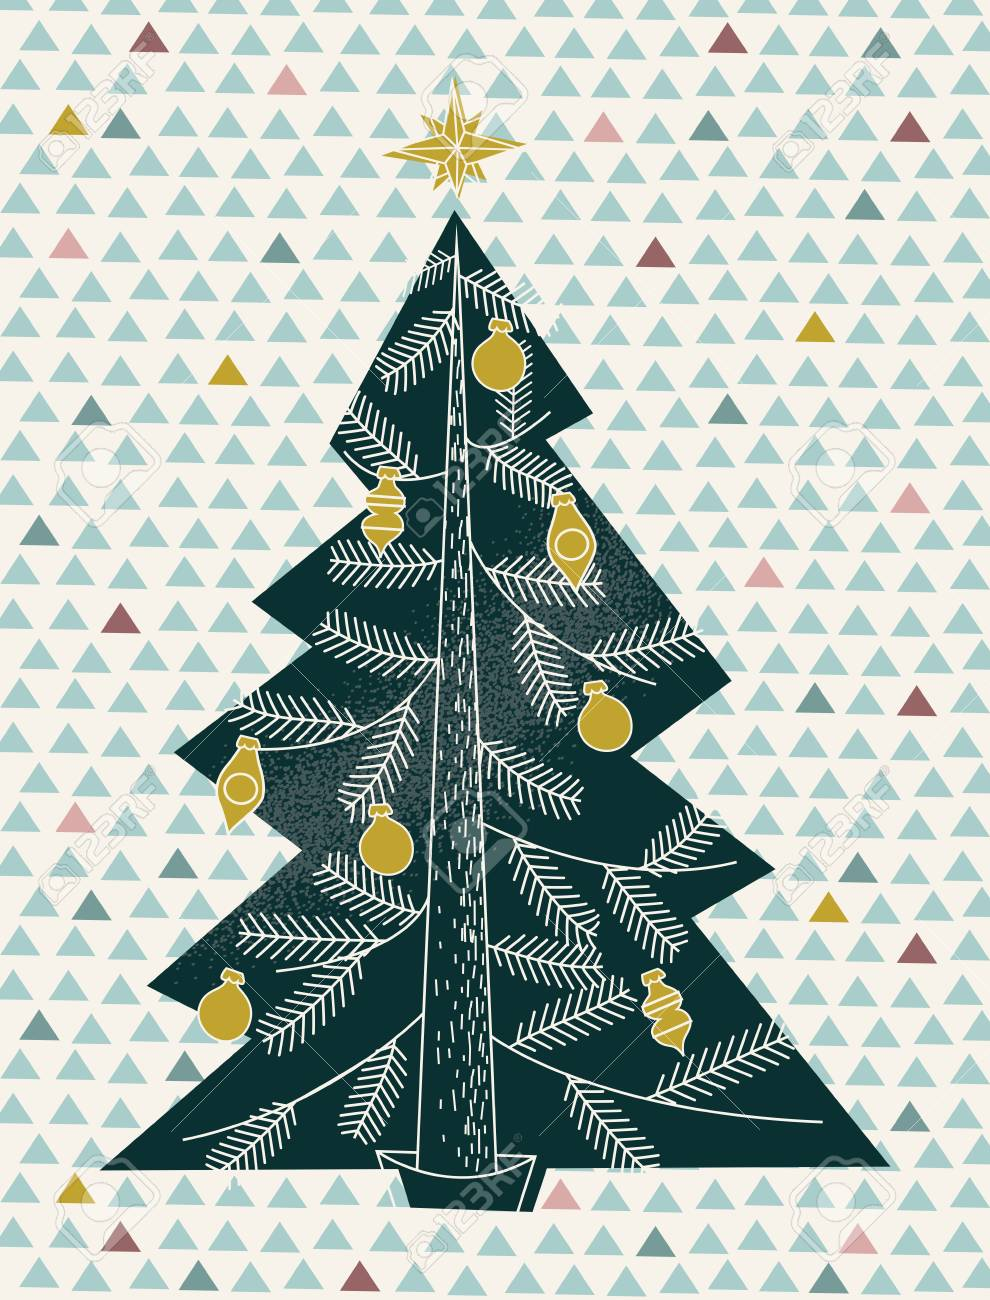 A Retro Modern Illustration Of A Christmas Tree In The Style Royalty Free Cliparts Vectors And Stock Illustration Image 127395557